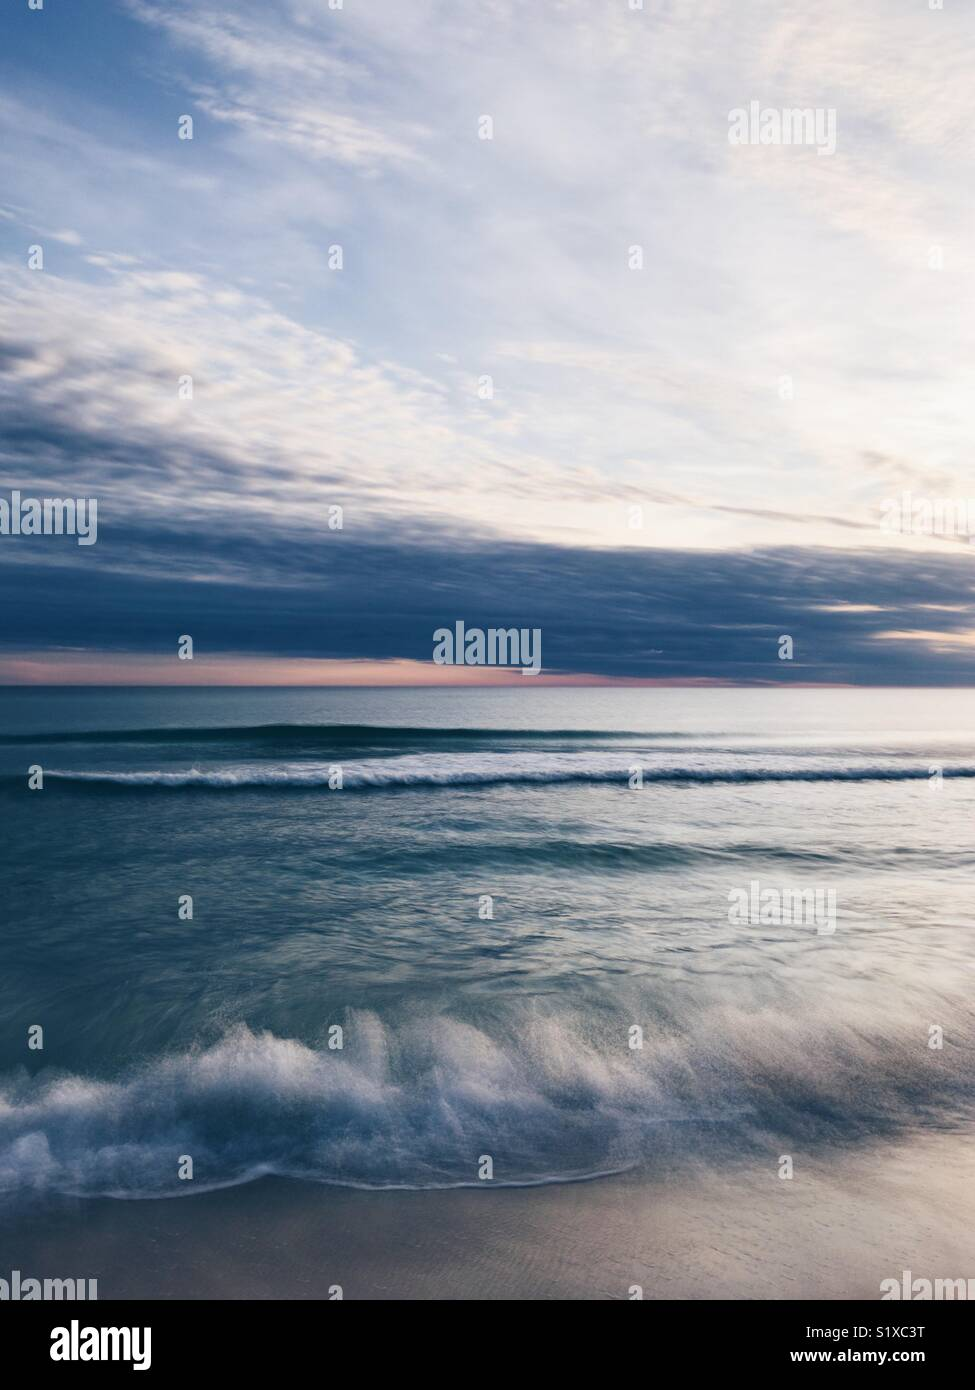 Long exposure of waves lapping on a beach in Florida on the coast of the Gulf of Mexico. - Stock Image